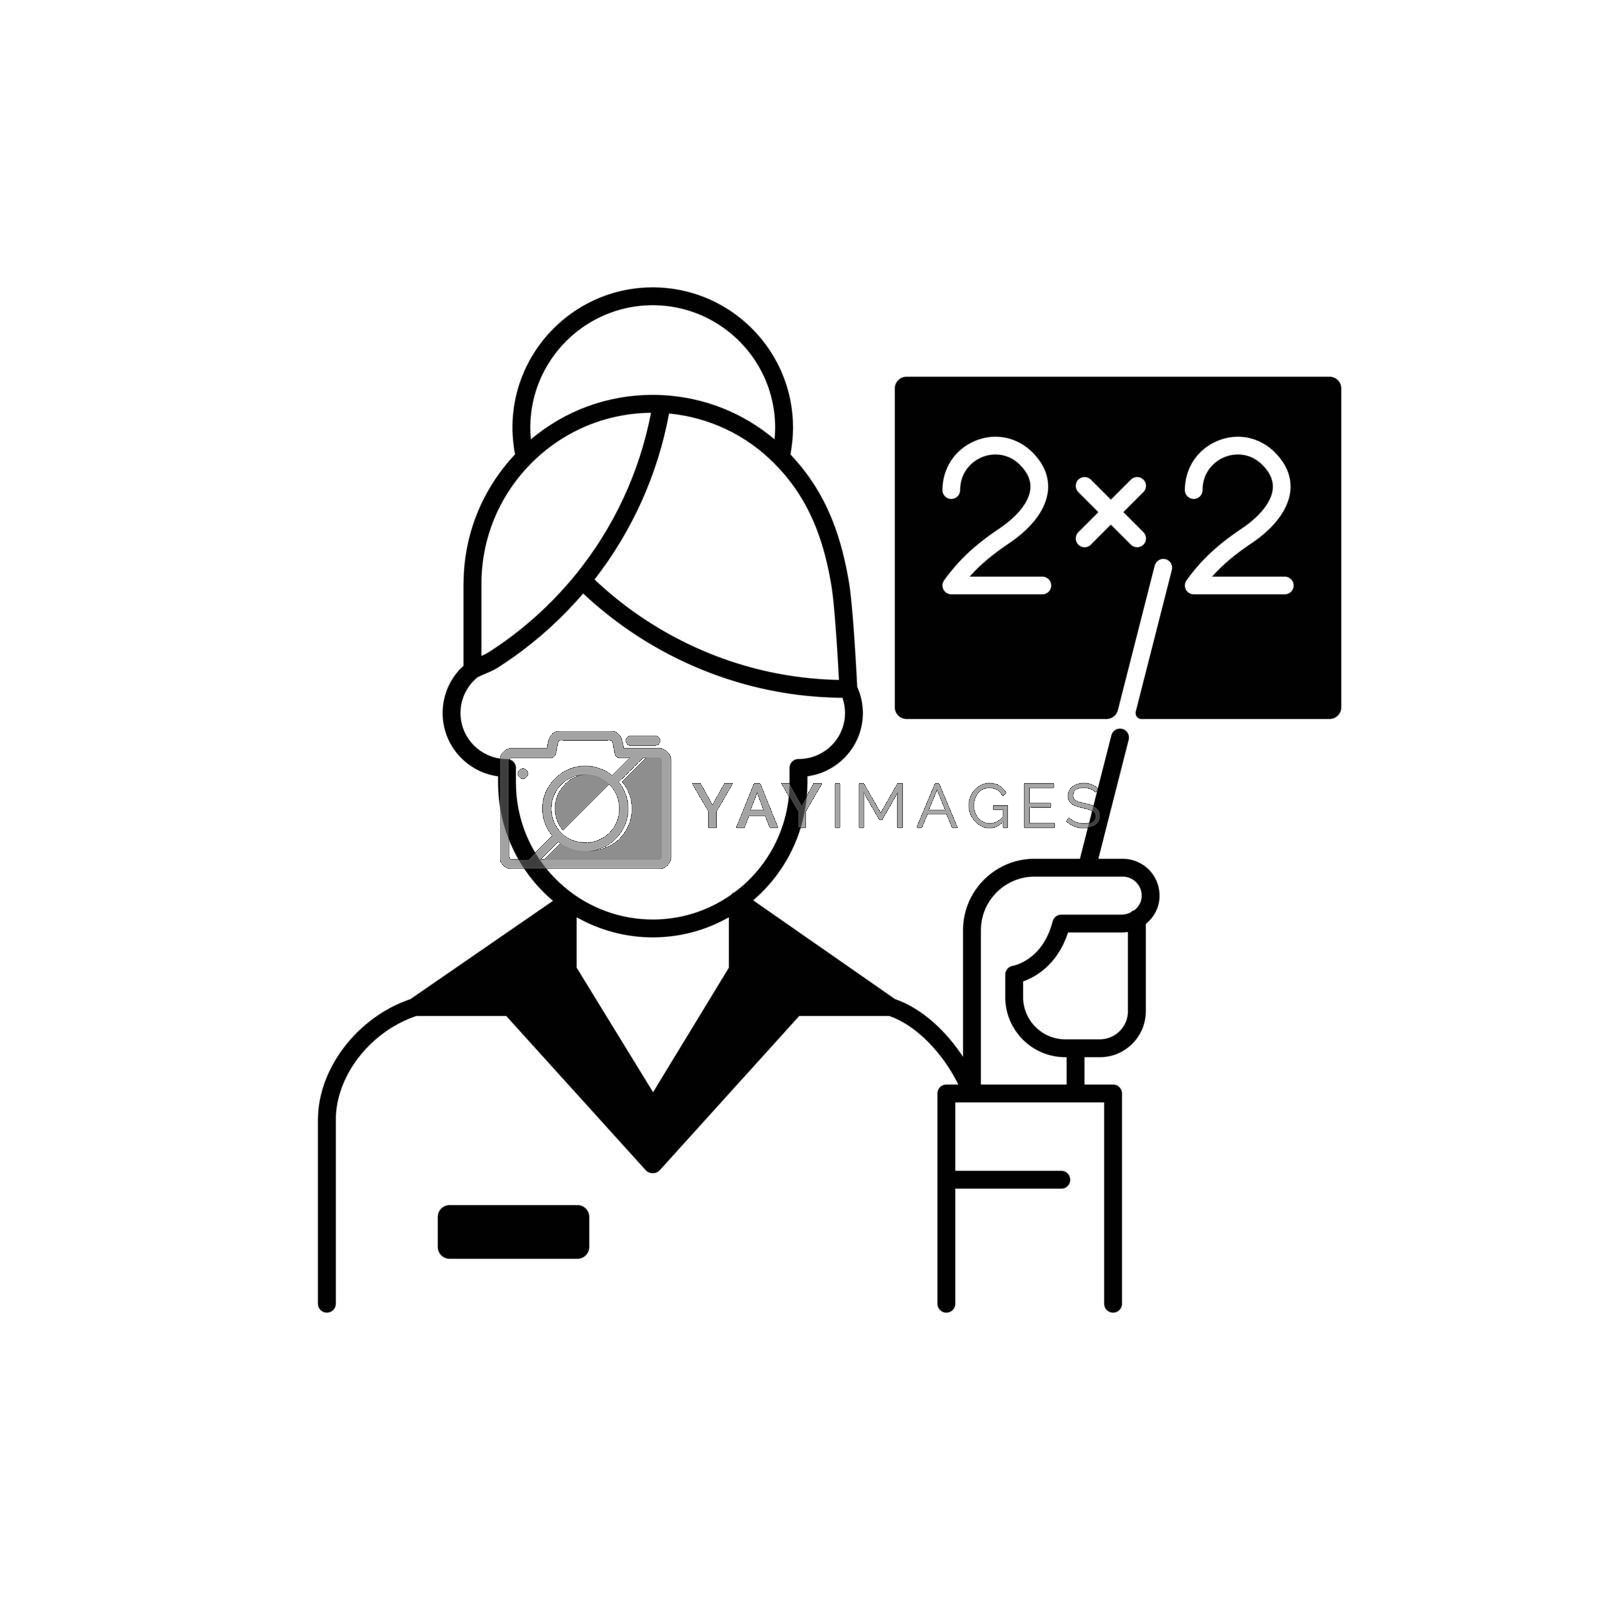 Pink collar worker black linear icon. Woman teaching class. Professional lecturer. Preschool childcare. Occupation in elementary school. Outline symbol on white space. Vector isolated illustration